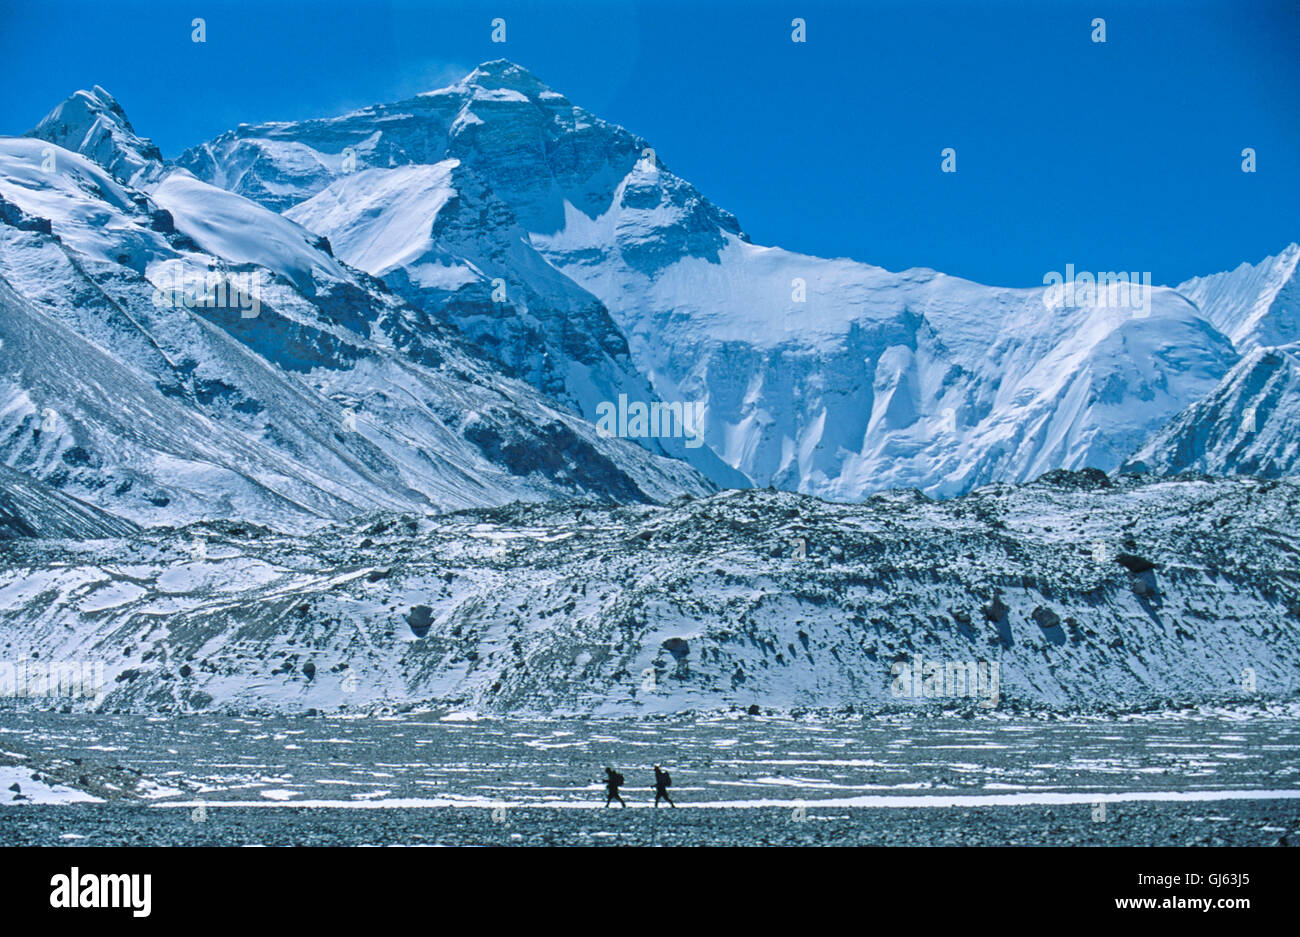 Hiking two kilometres south of Everest Base Camp (5,200 metres) with excellent views of Mount Everests North Face - Stock Image